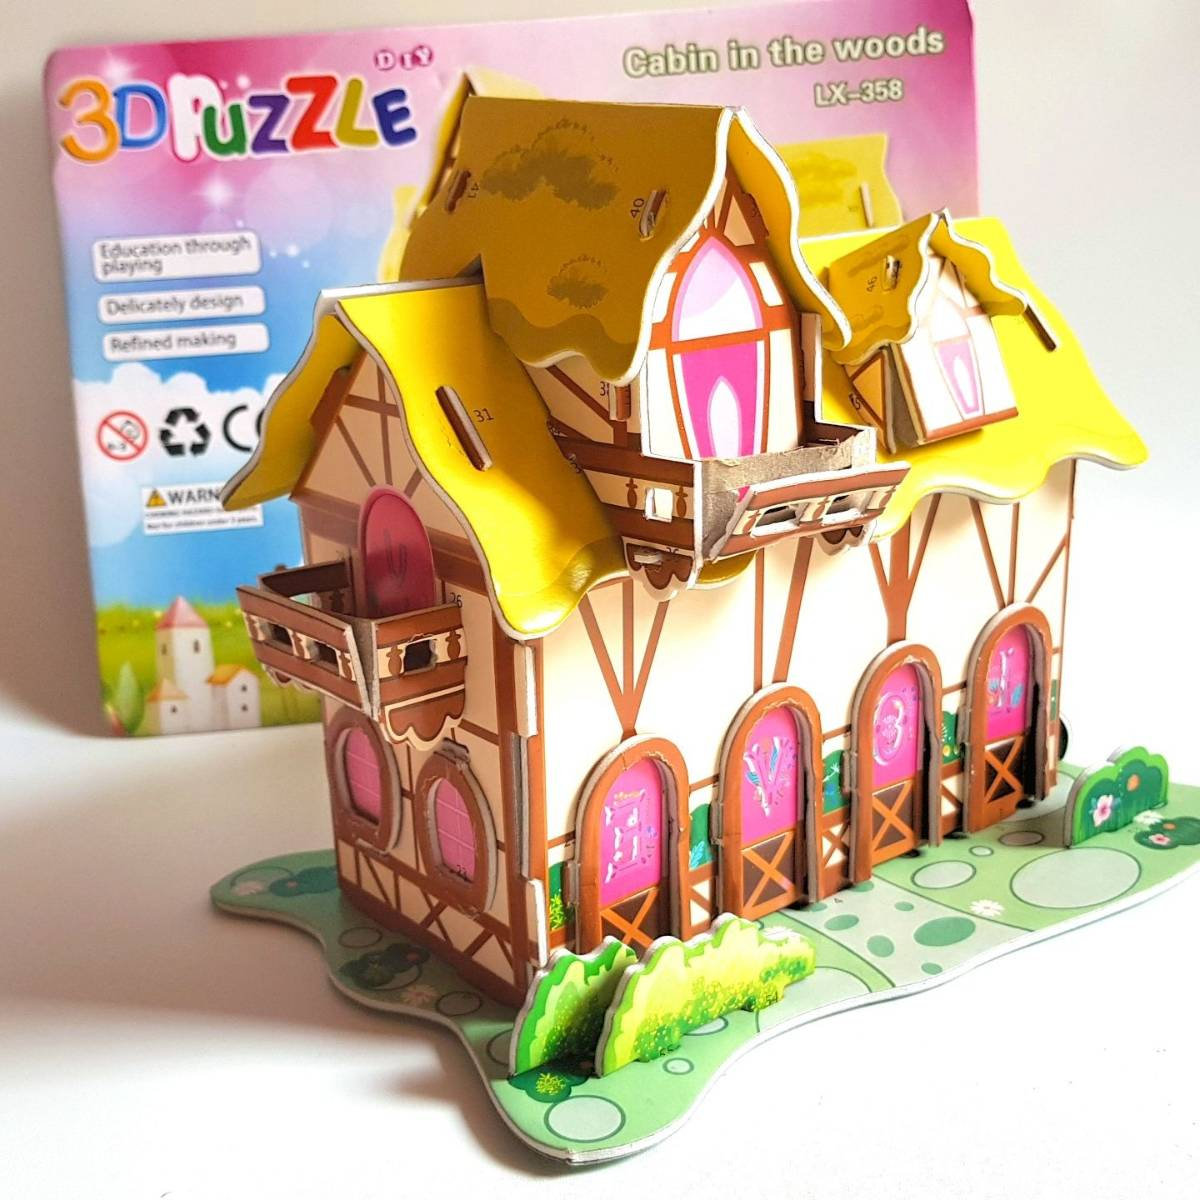 Mainan 3d Puzzle - Cabin In The Woods0